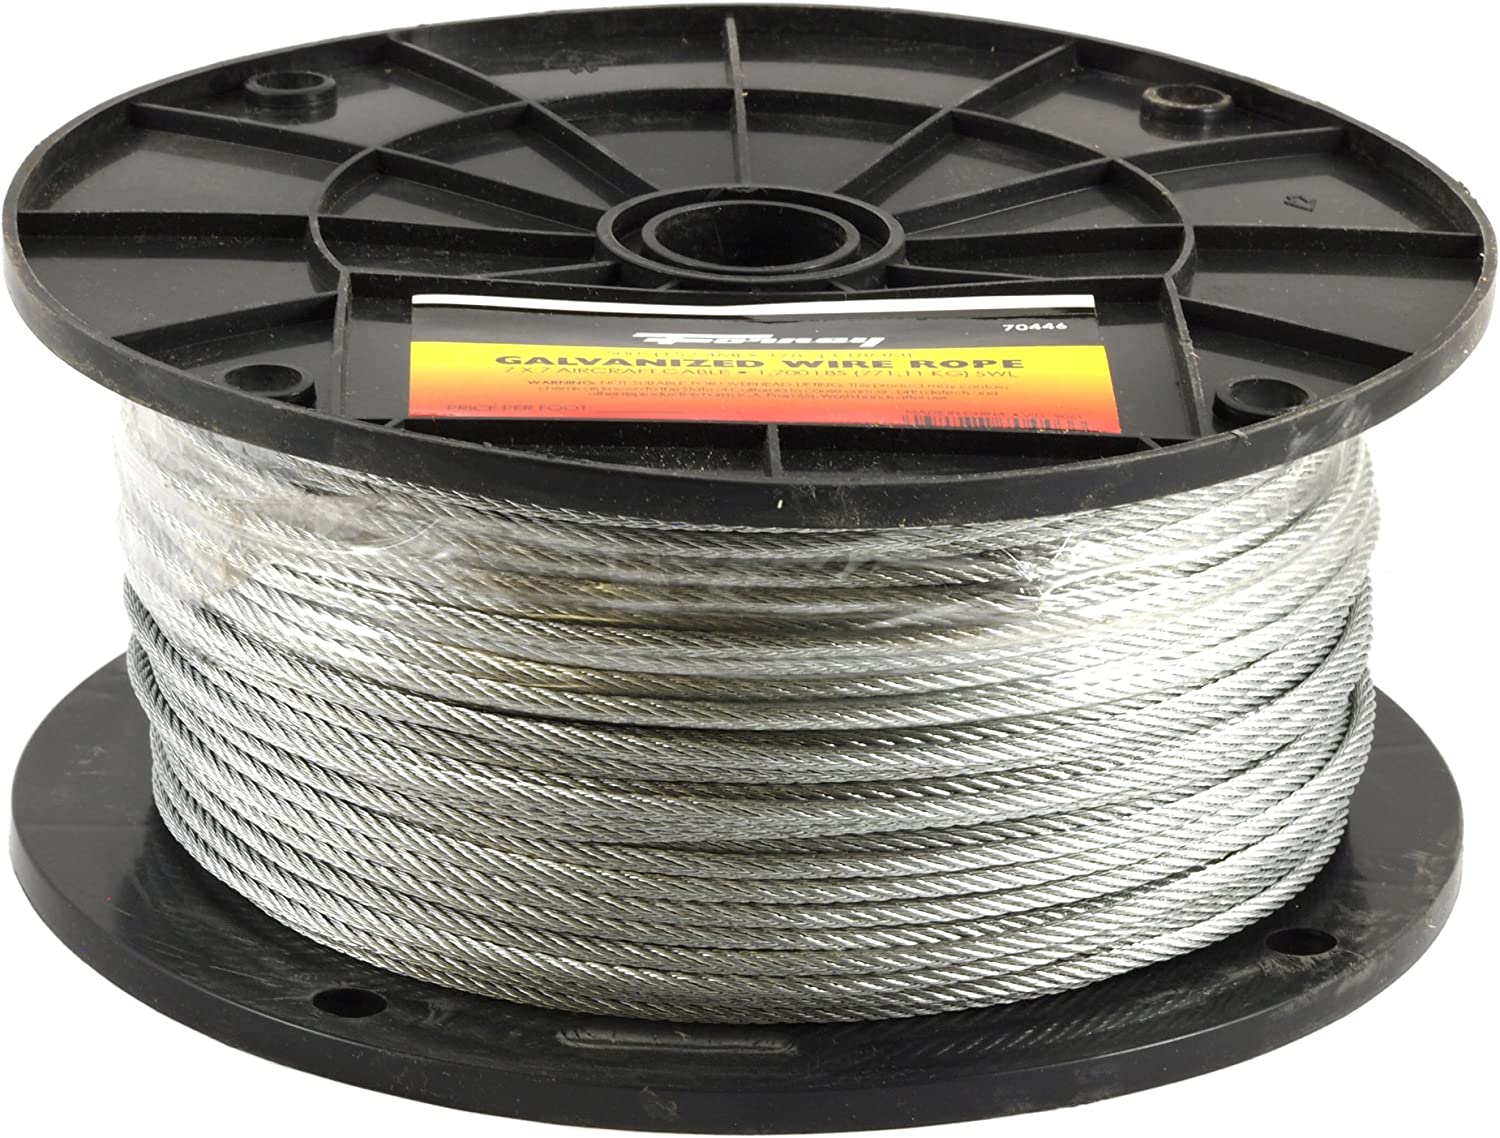 OFFicial NEW site Forney 70446 Wire Rope Aircraft Cable Galvanized 500-Feet-by-1